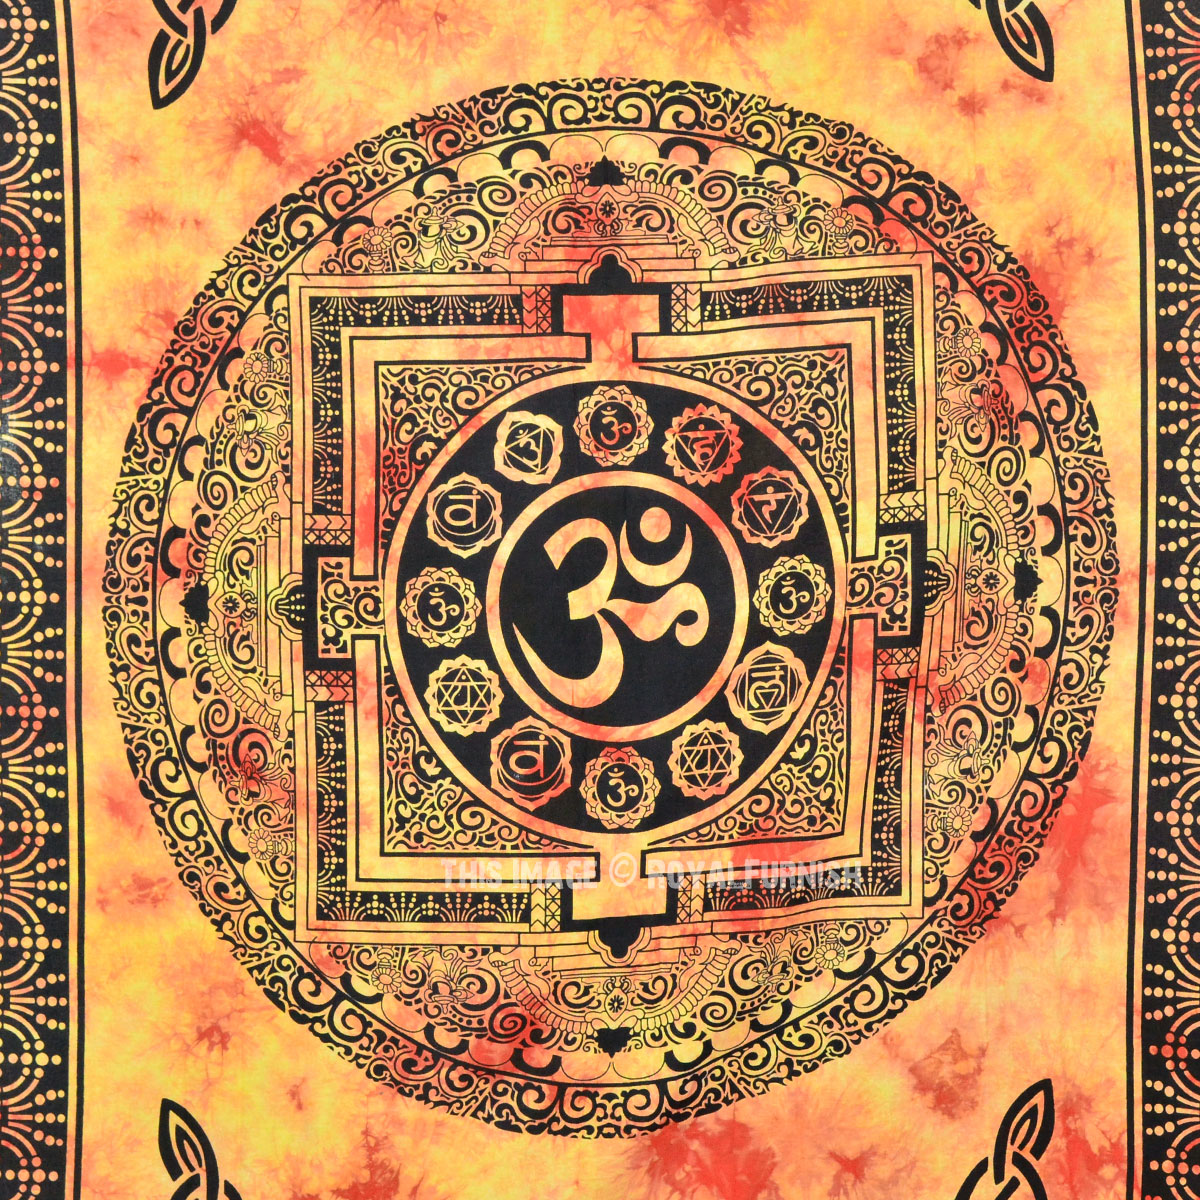 Multi Om Aum Tapestry Wall Hanging Yoga Meditation Room